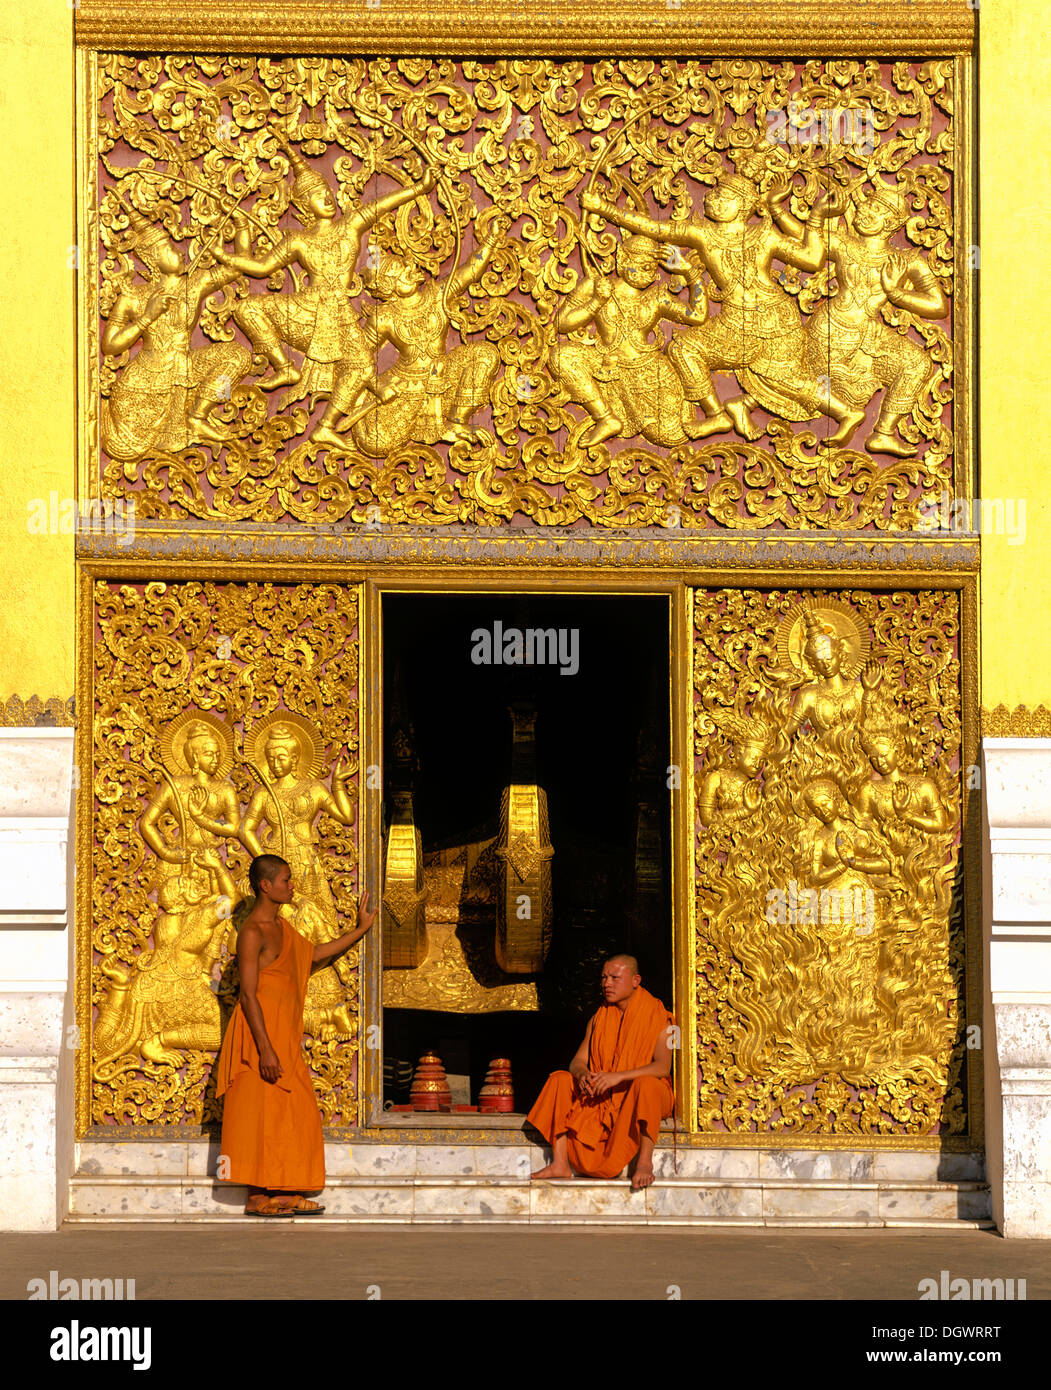 Golden reliefs, monks at the entrance to the Carriage House, Wat Xieng Tong or Vat Xienthong, Luang Prabang - Stock Image